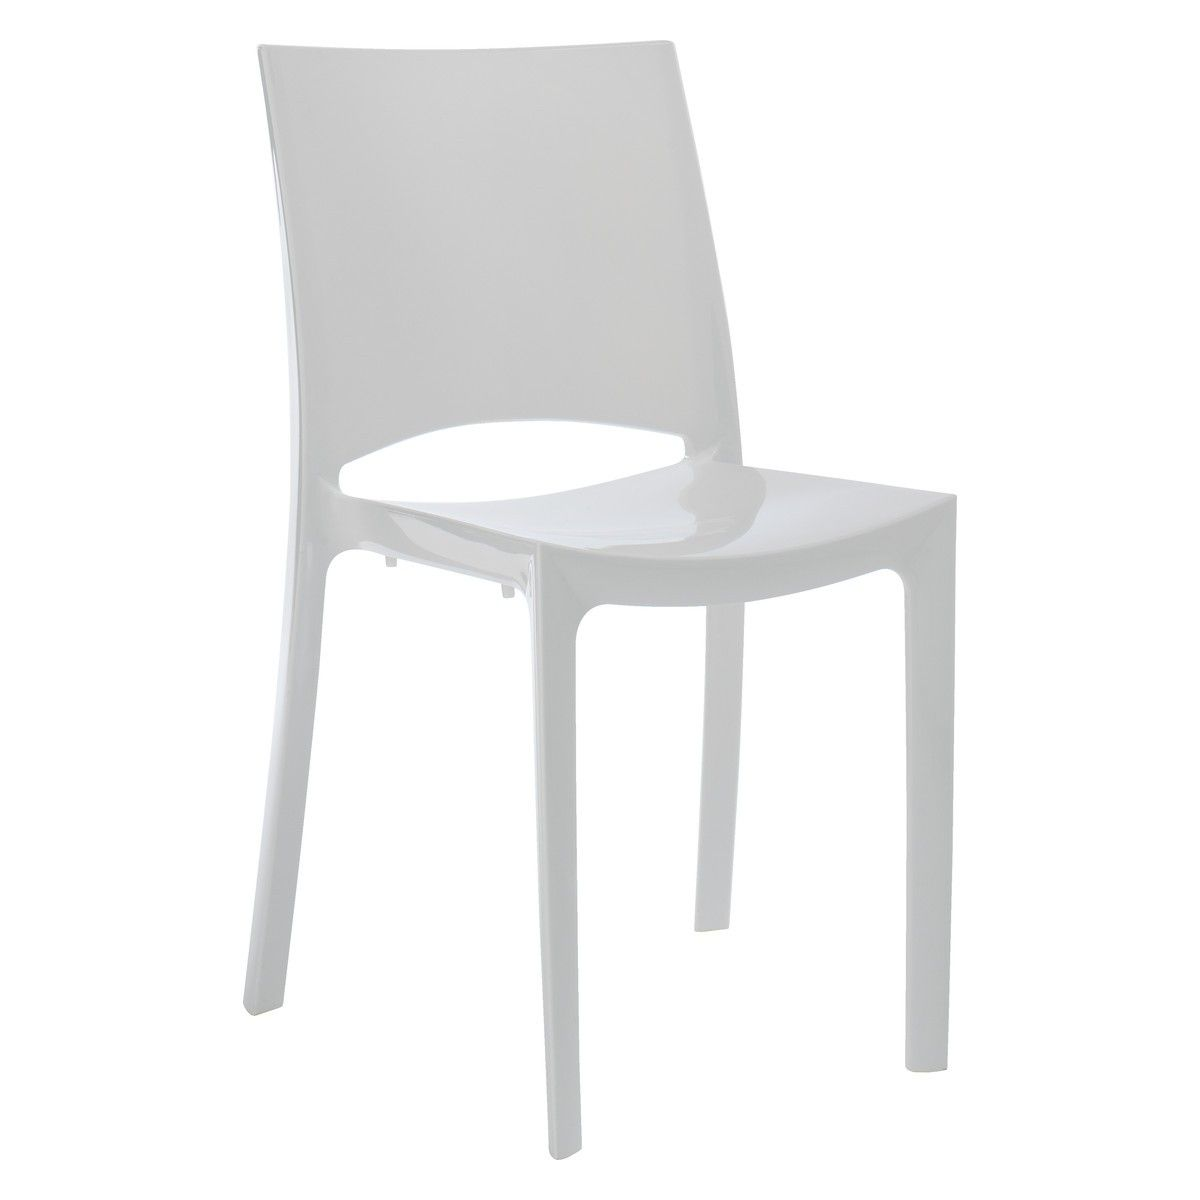 Verne White Plastic Stackable Dining Chair Now At Habitat Uk